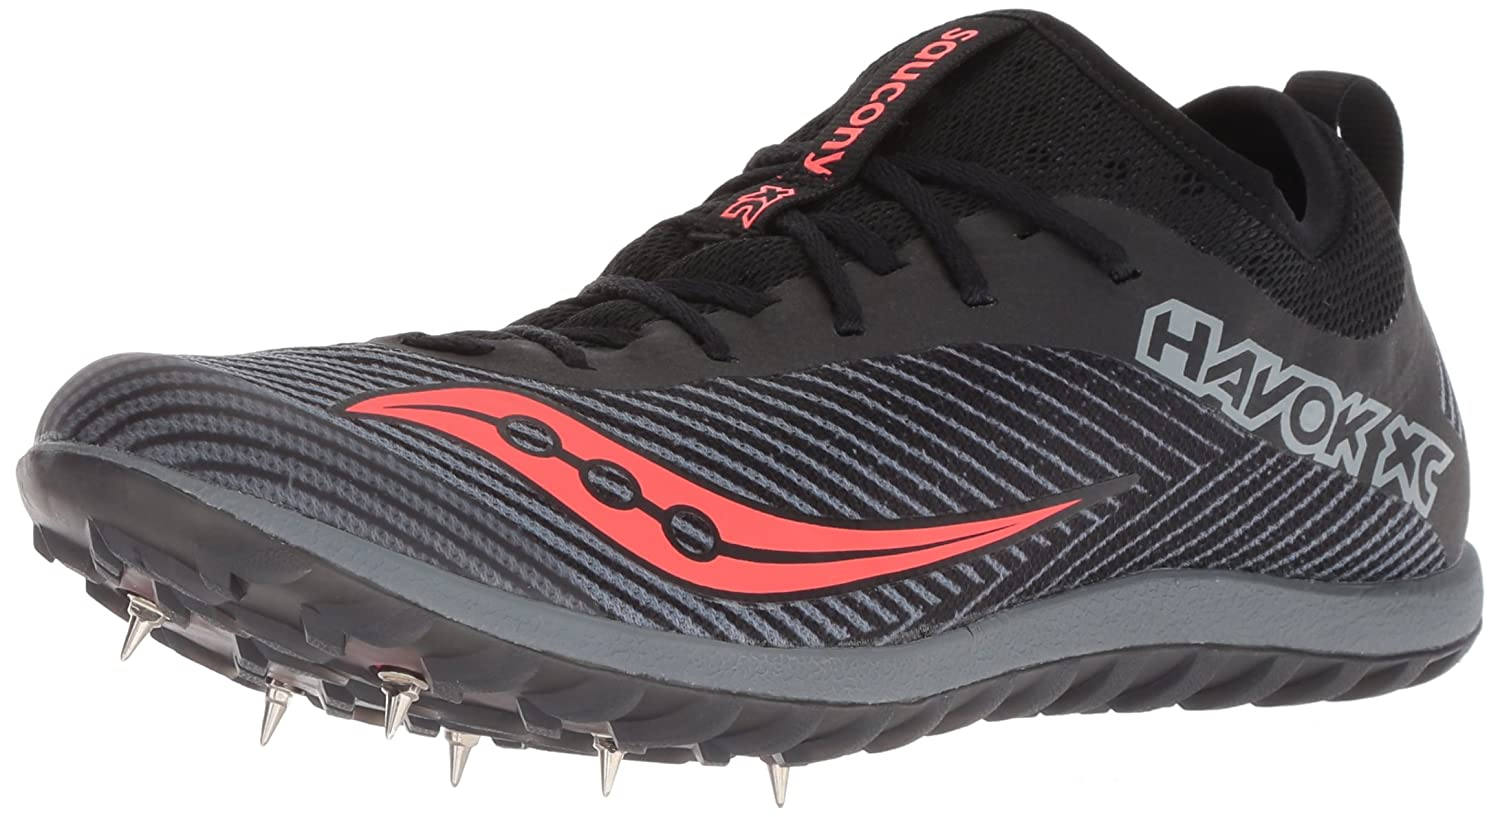 Saucony Women's Havok Xc2 Track Shoe B076T9RWTR 5 B(M) US|Black/Grey/Vizired